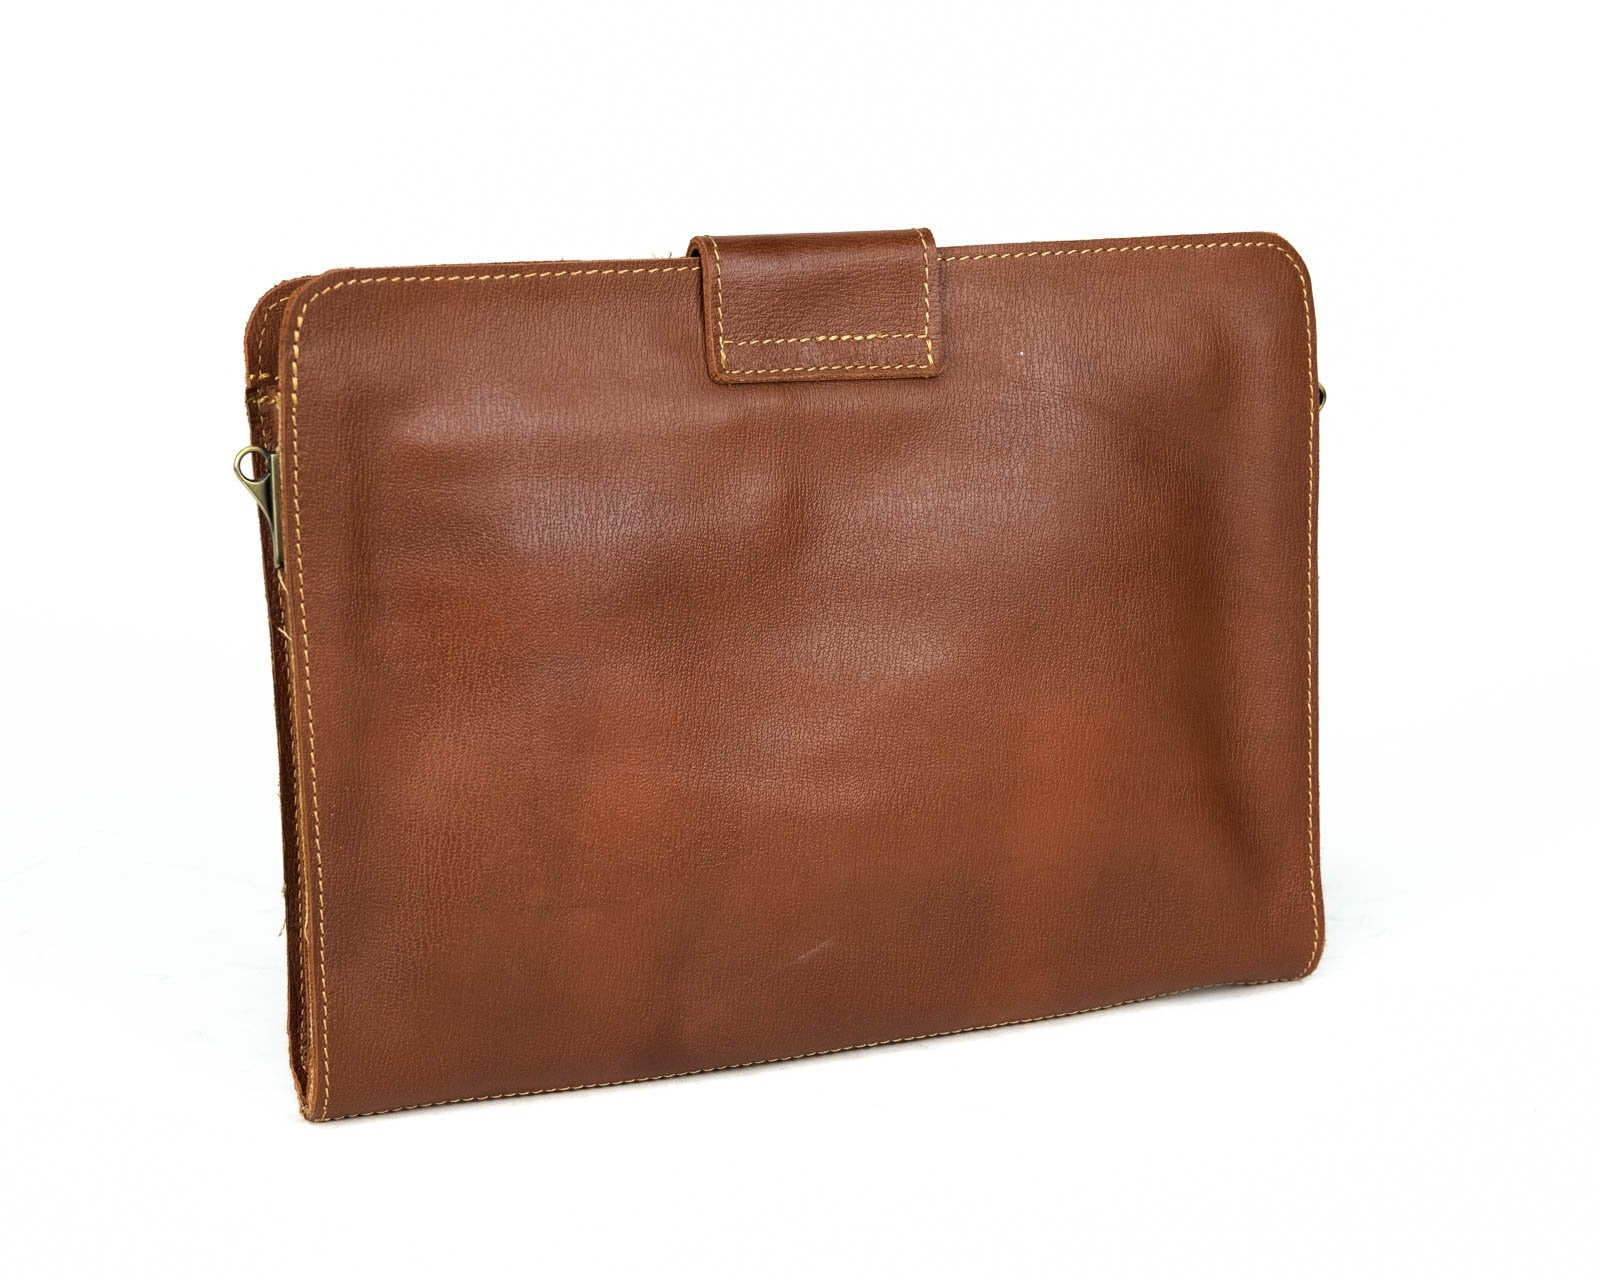 The Remy iPad Case